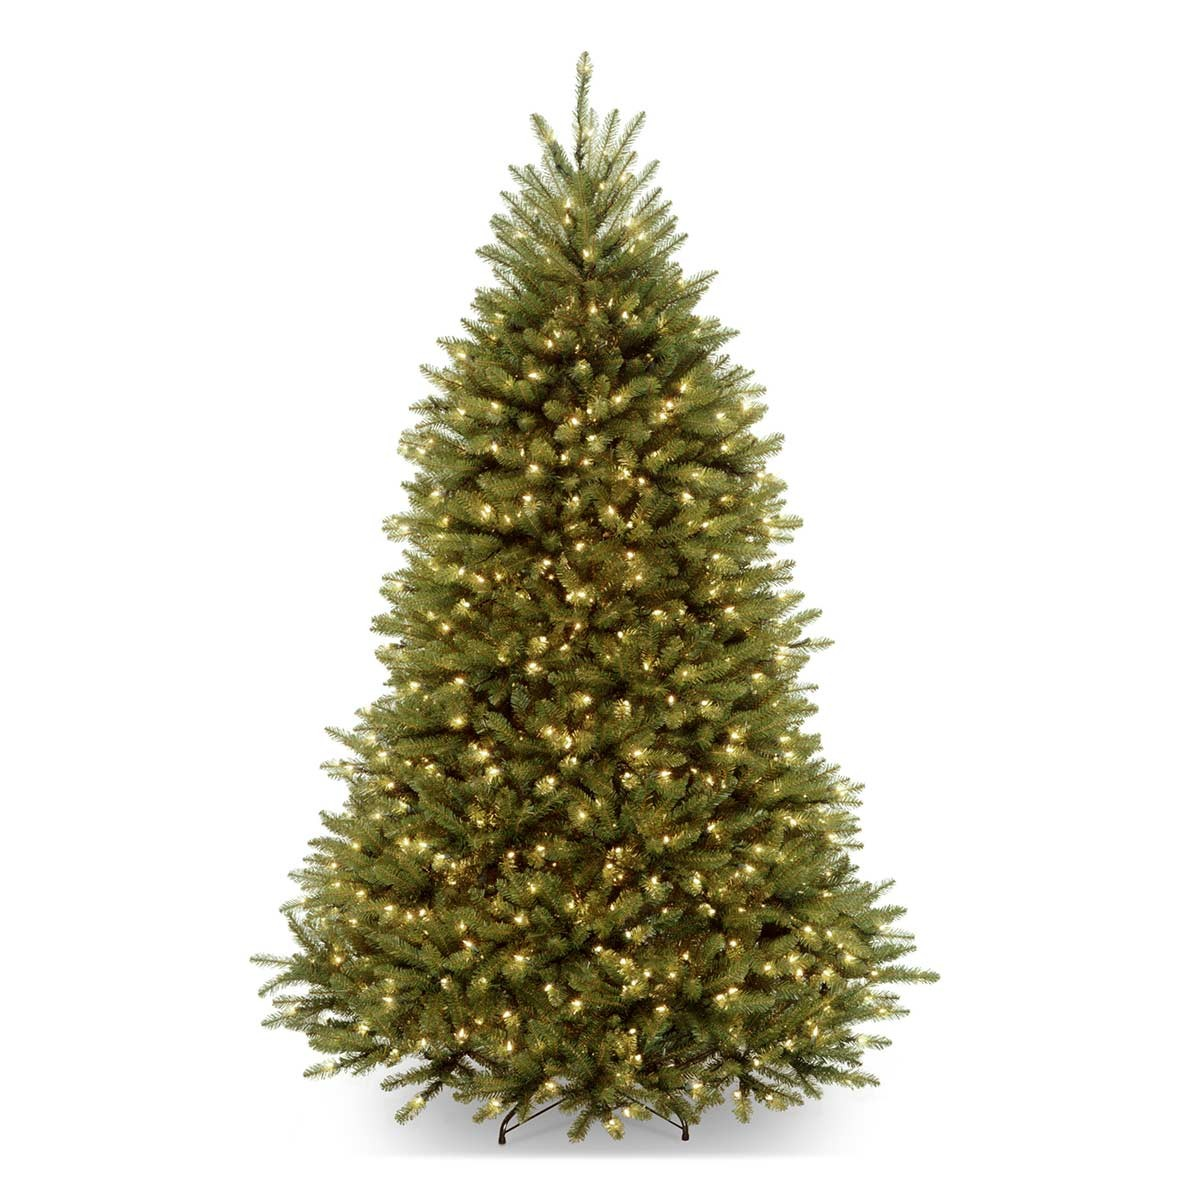 7 1/2' Dunhill Fir Hinged Tree with 750 Clear lights